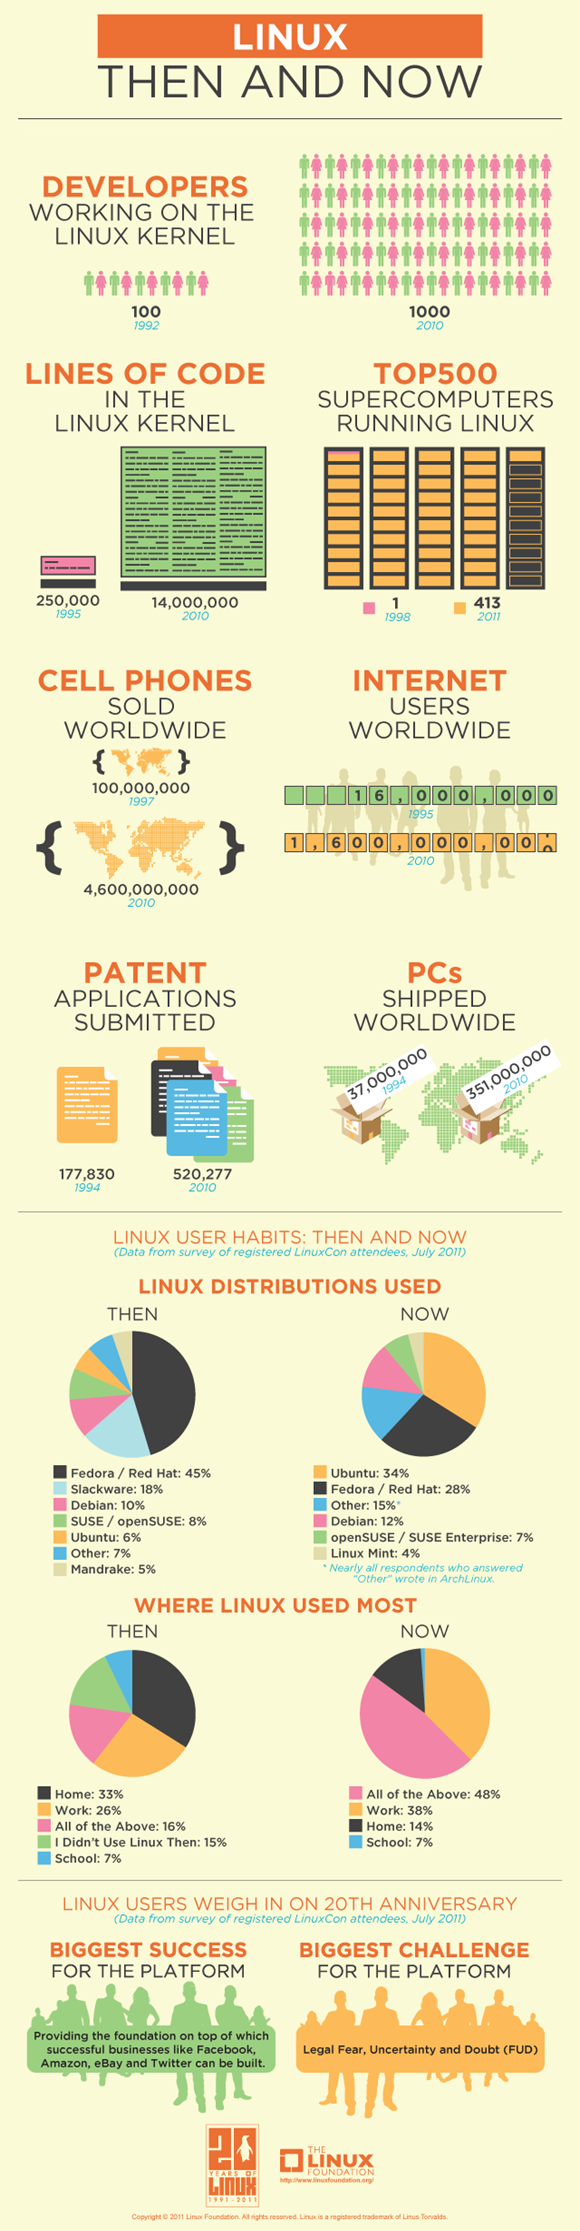 Linux-Then-and-Now-411587-2